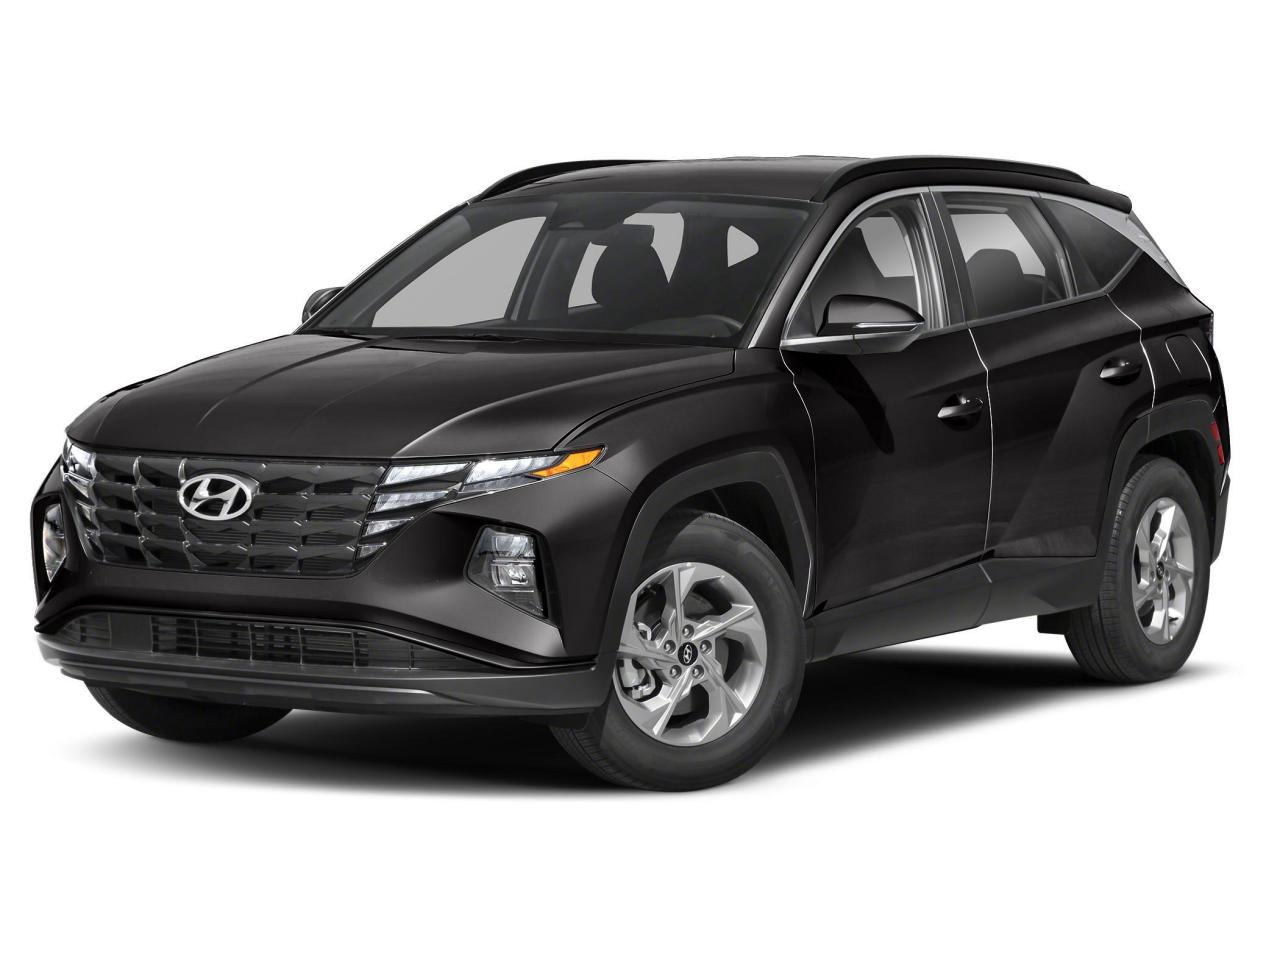 2022 Hyundai Tucson 2.5L AWD PREFERRED NO OPTIONS